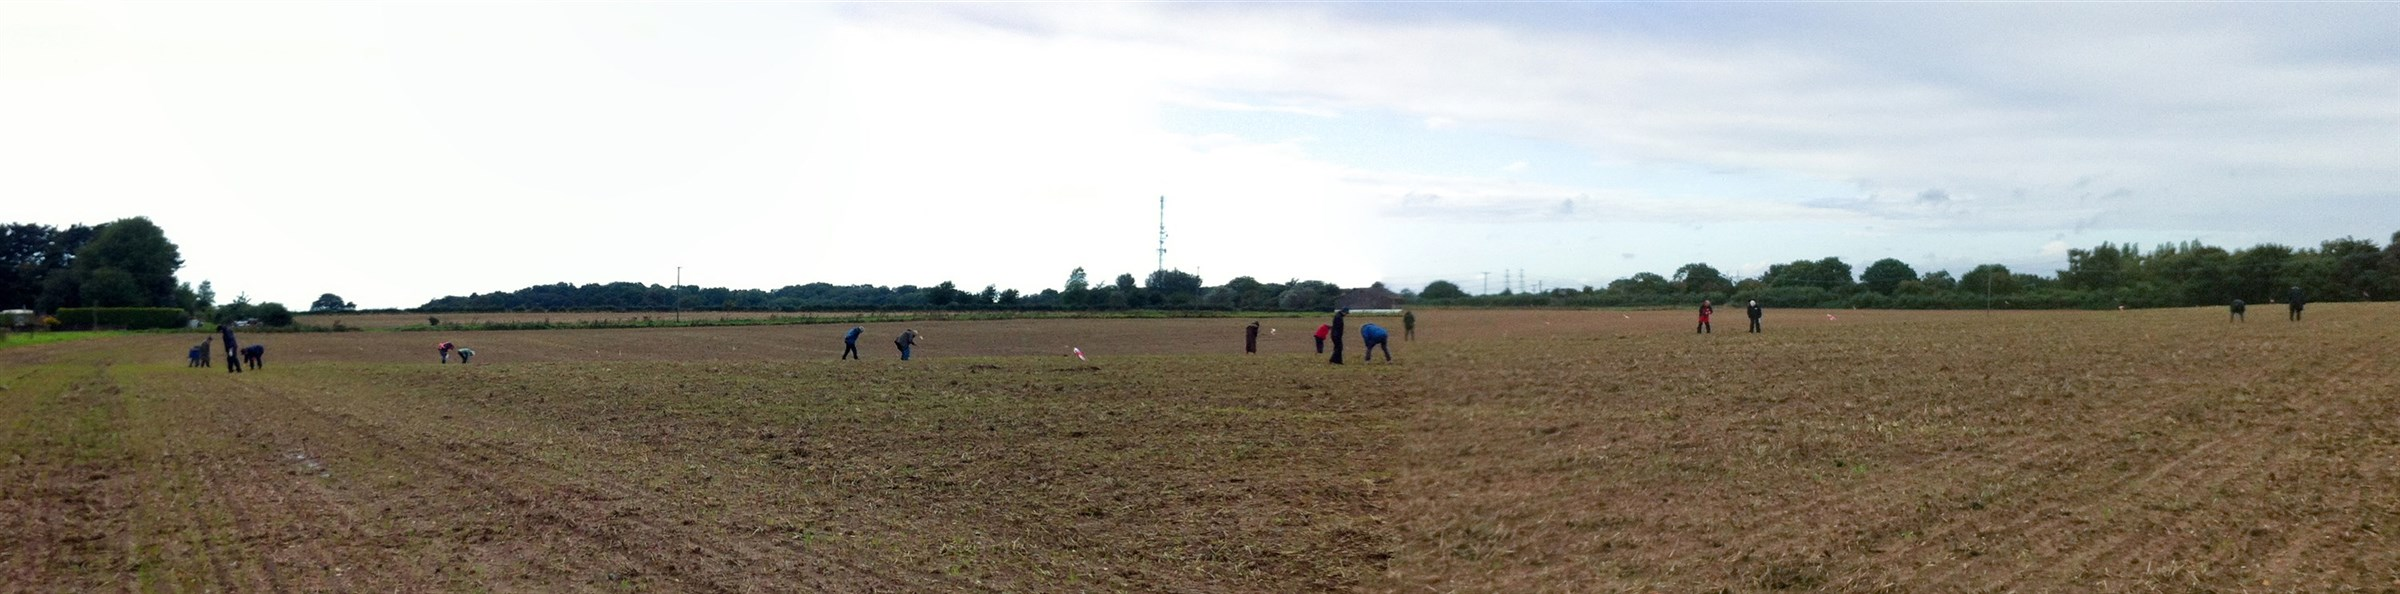 Fieldwalking with the Aldeburgh and District Local History Society, September 2015